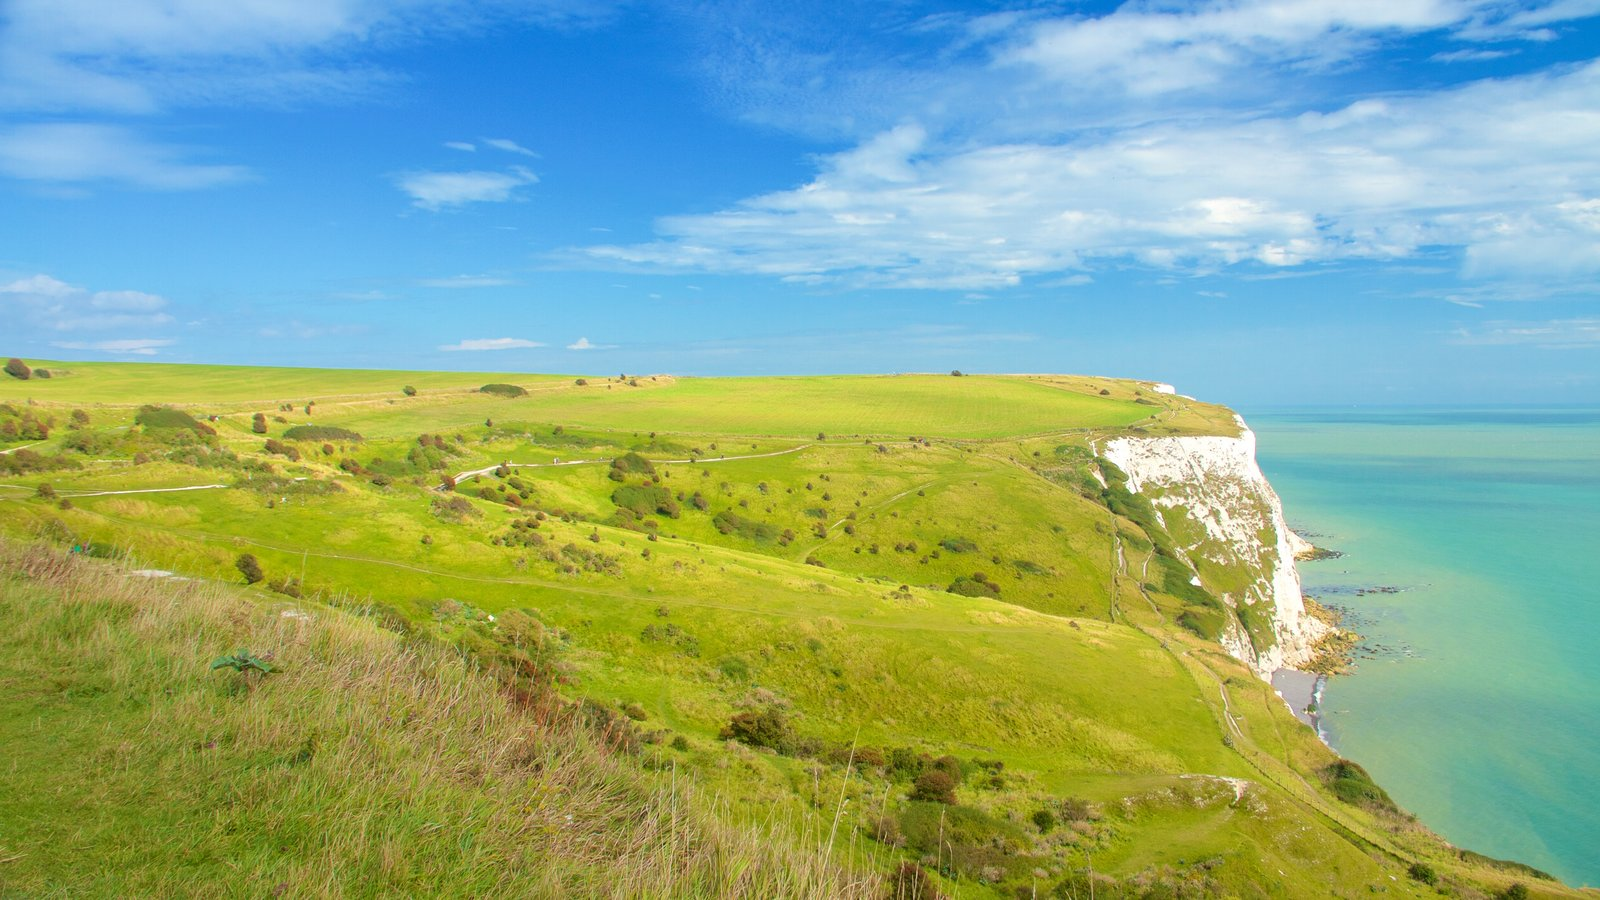 Dover which includes tranquil scenes, landscape views and rugged coastline